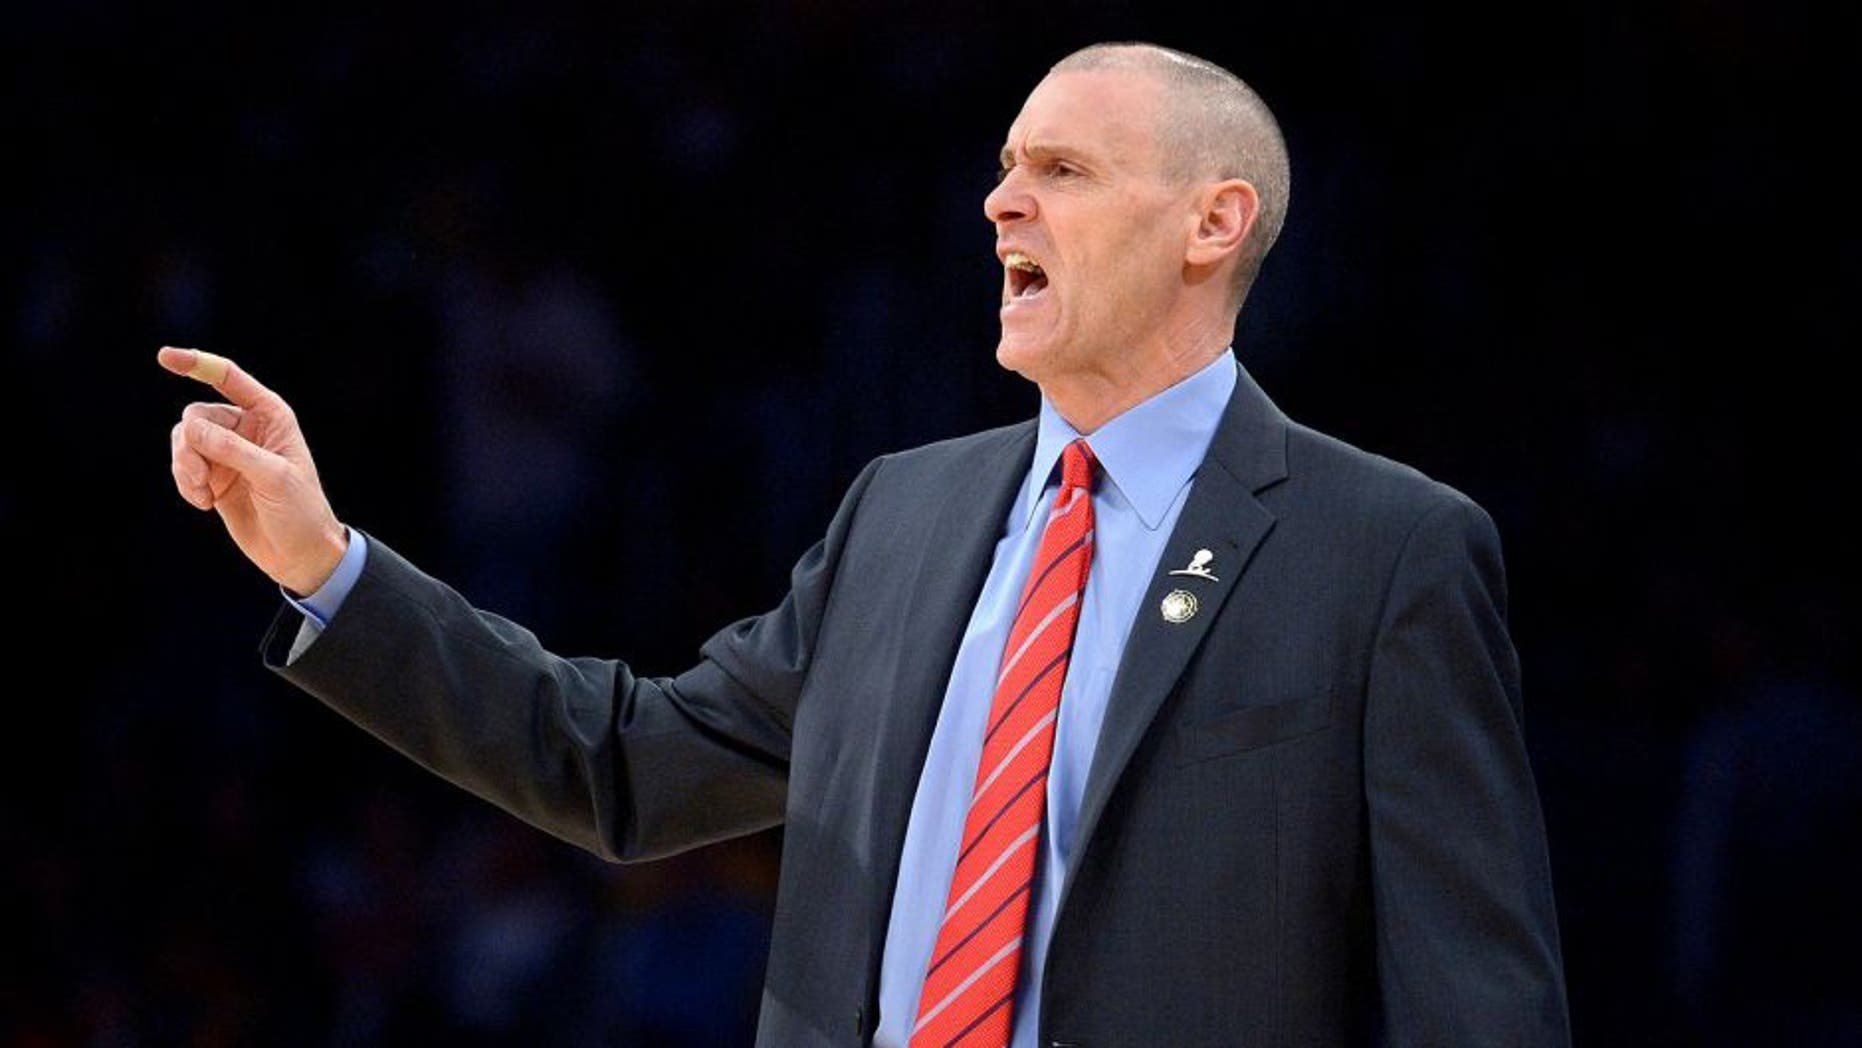 Apr 4, 2014; Los Angeles, CA, USA; Dallas Mavericks coach Rick Carlisle reacts during the first half against the Los Angeles Lakers at Staples Center. Mandatory Credit: Kirby Lee-USA TODAY Sports